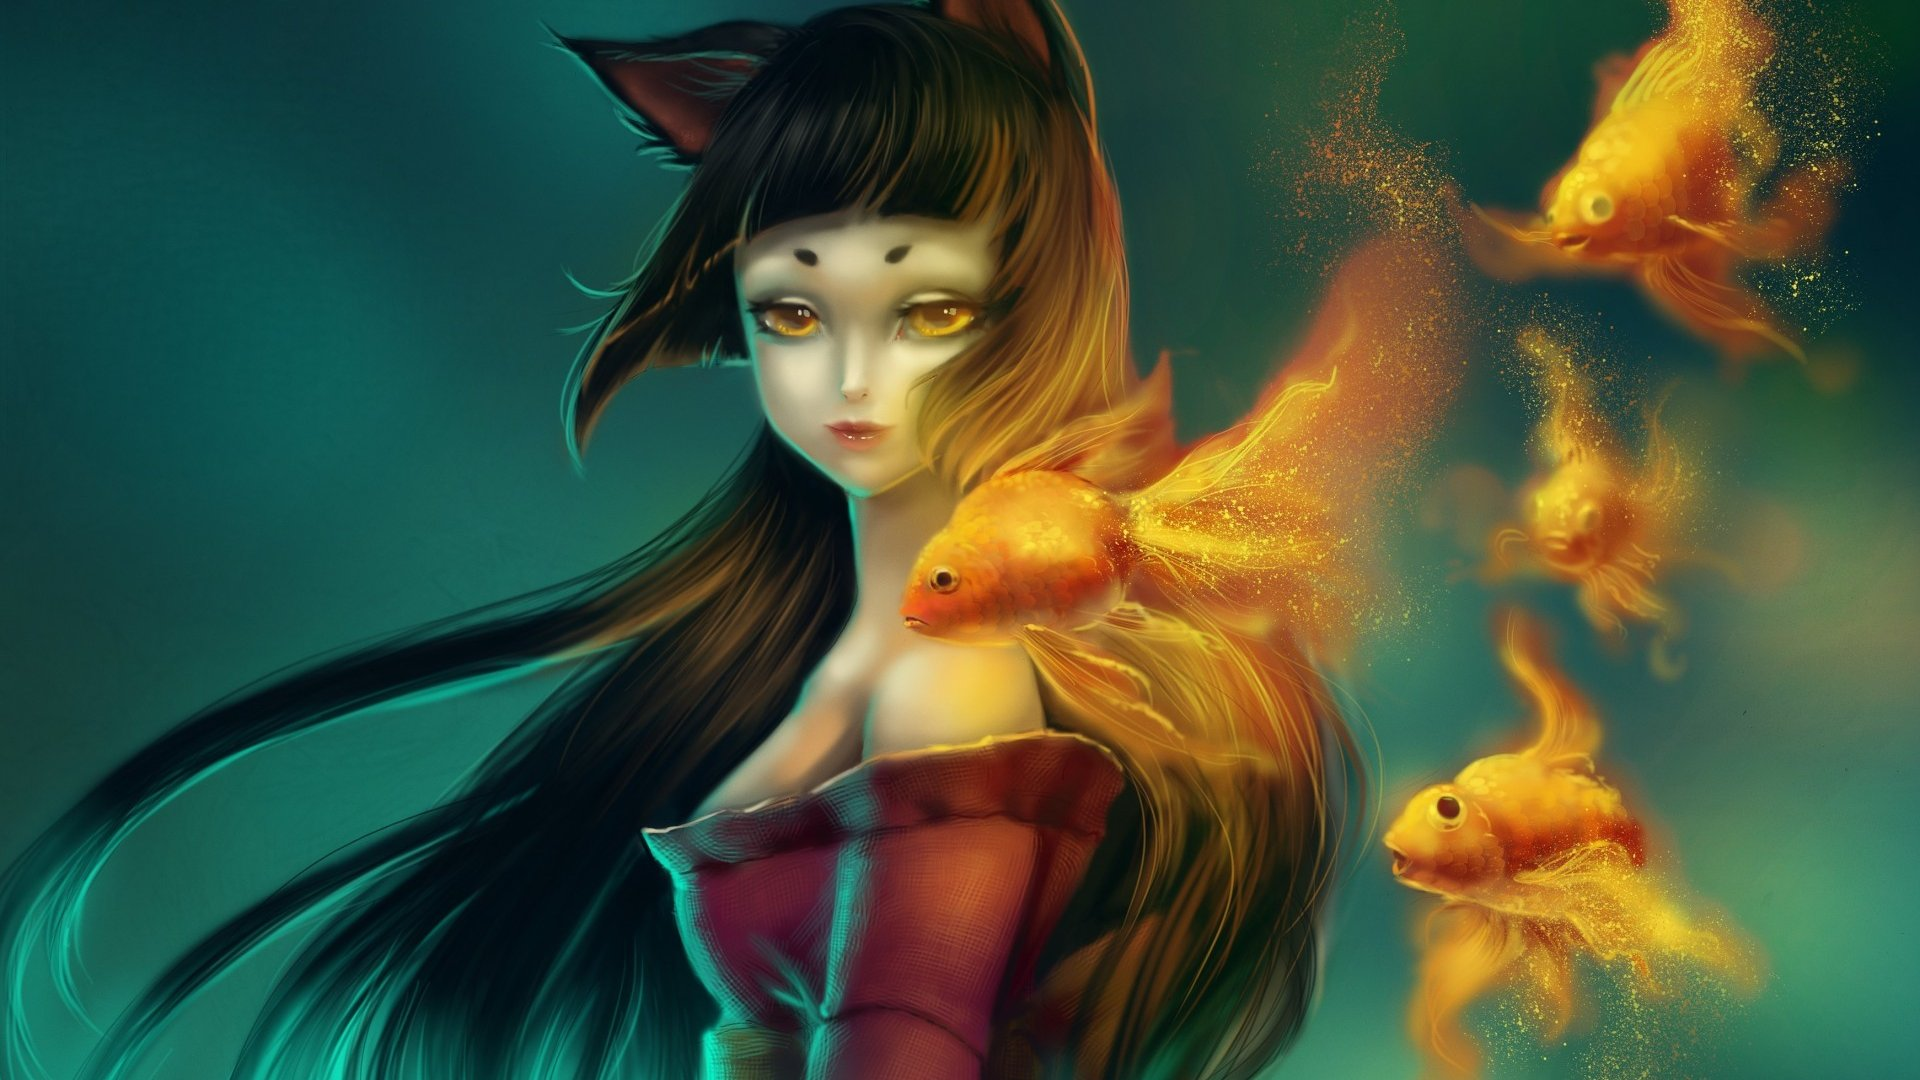 fantasy-elf-gold-fish-blur-background-underwater-1920x1080